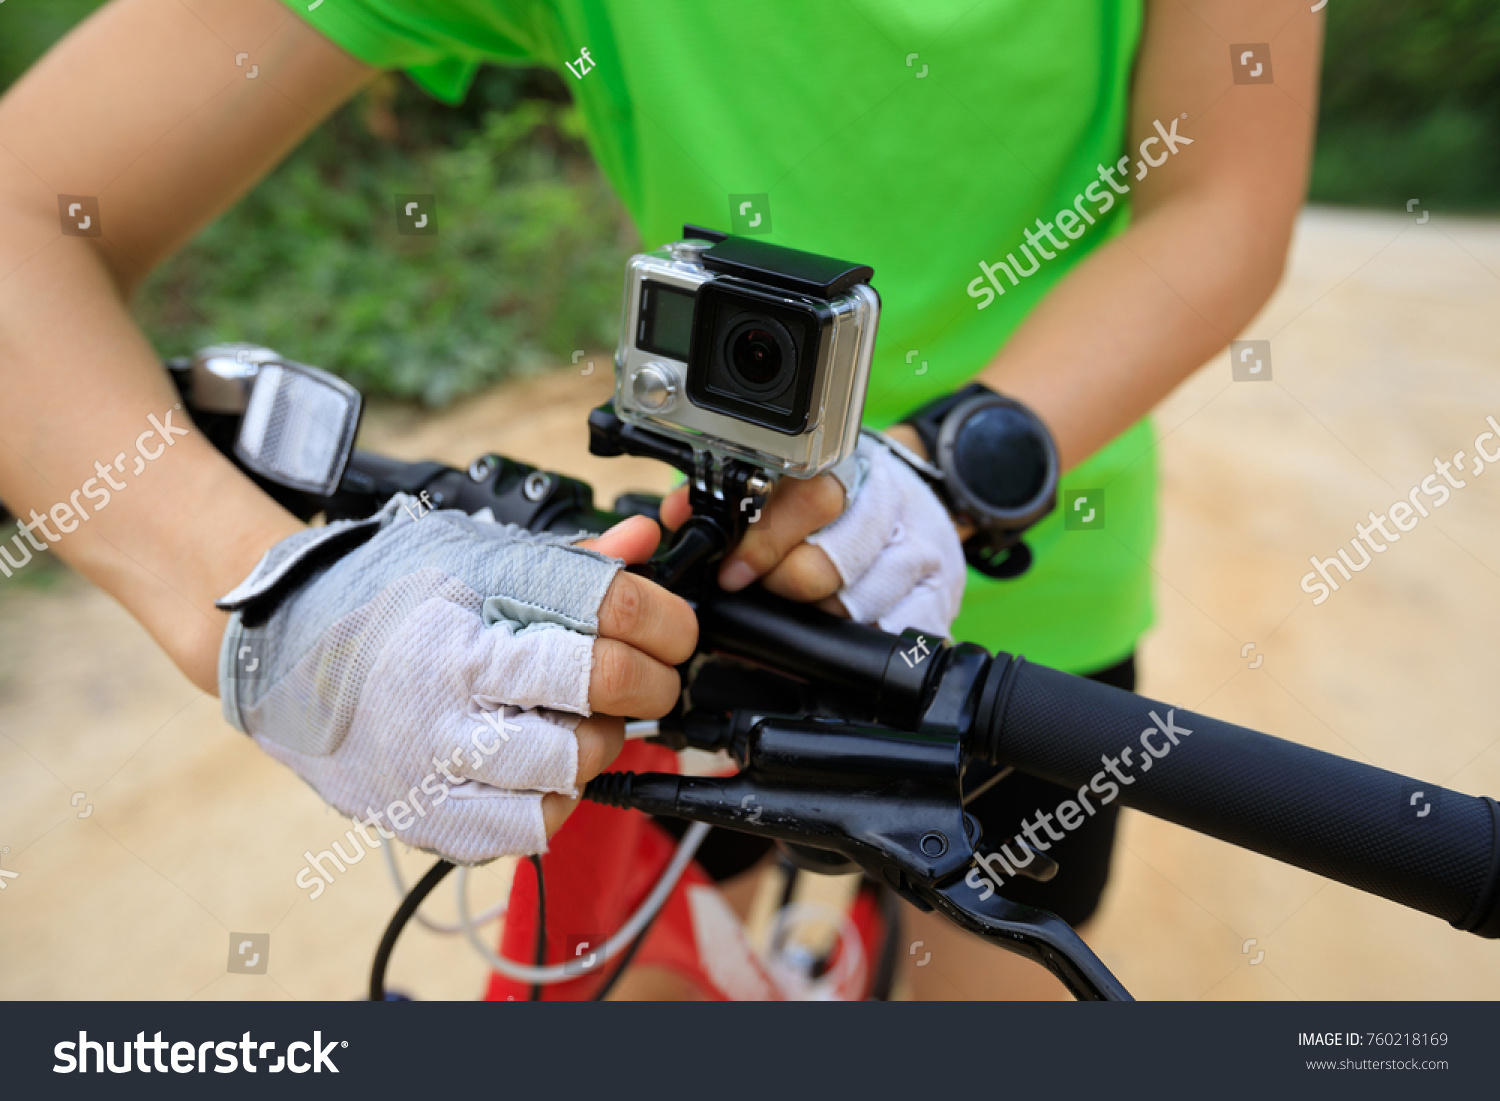 Action Camera Mounted On Mountain Bike Stock Photo 760218169